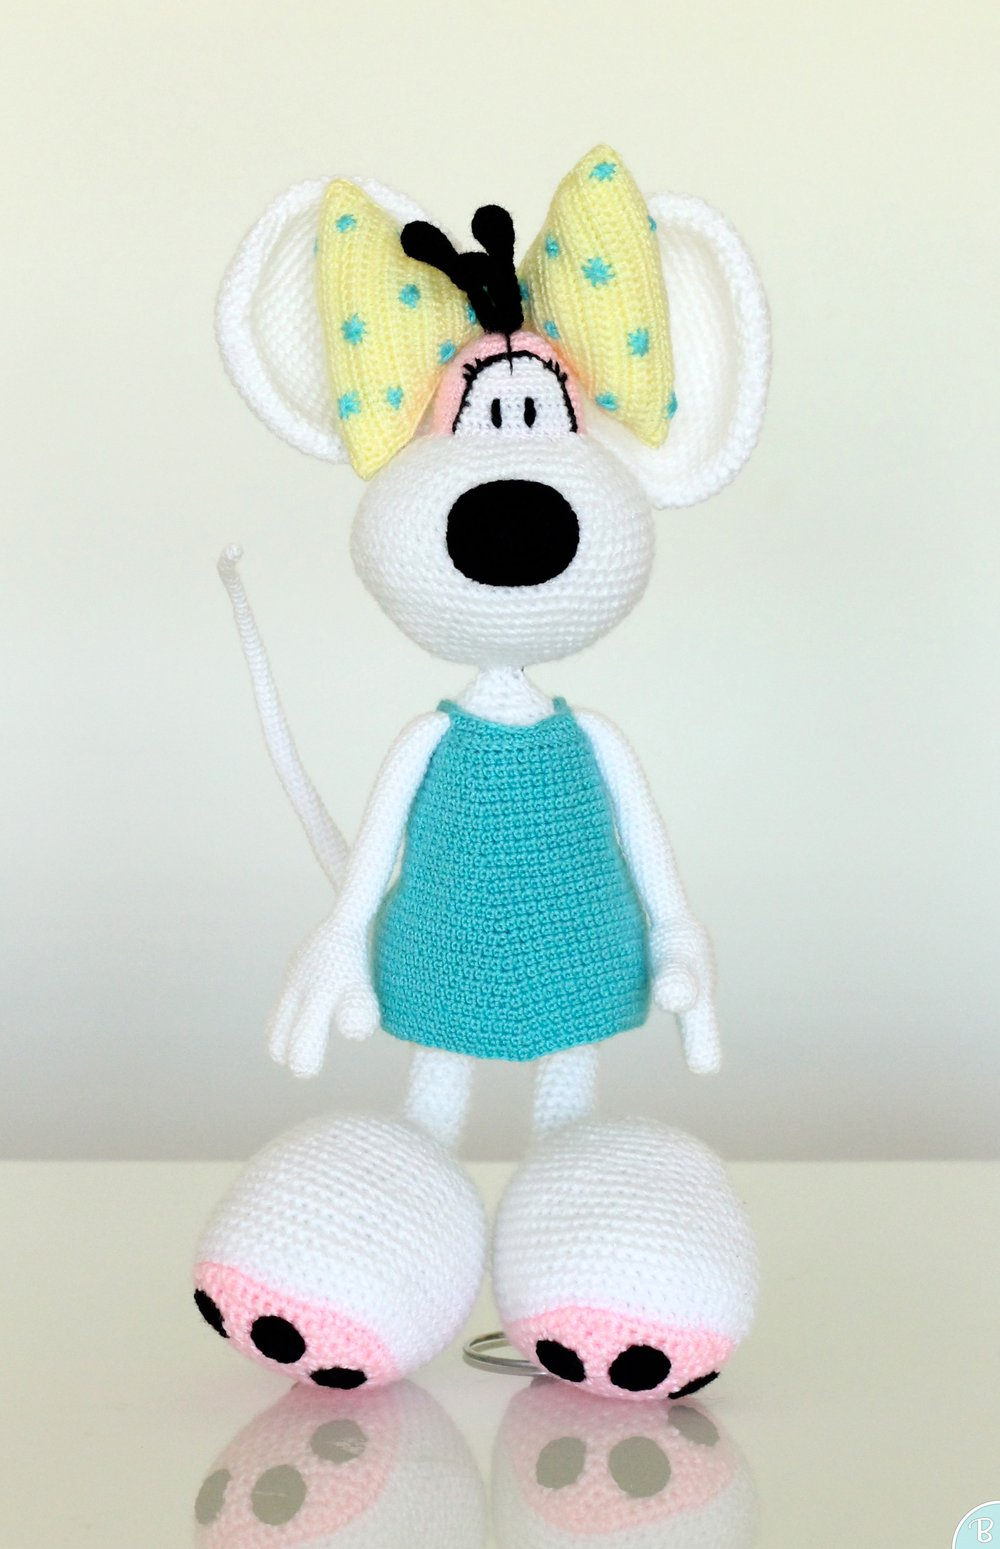 Diddlina amigurumi stuffed toy